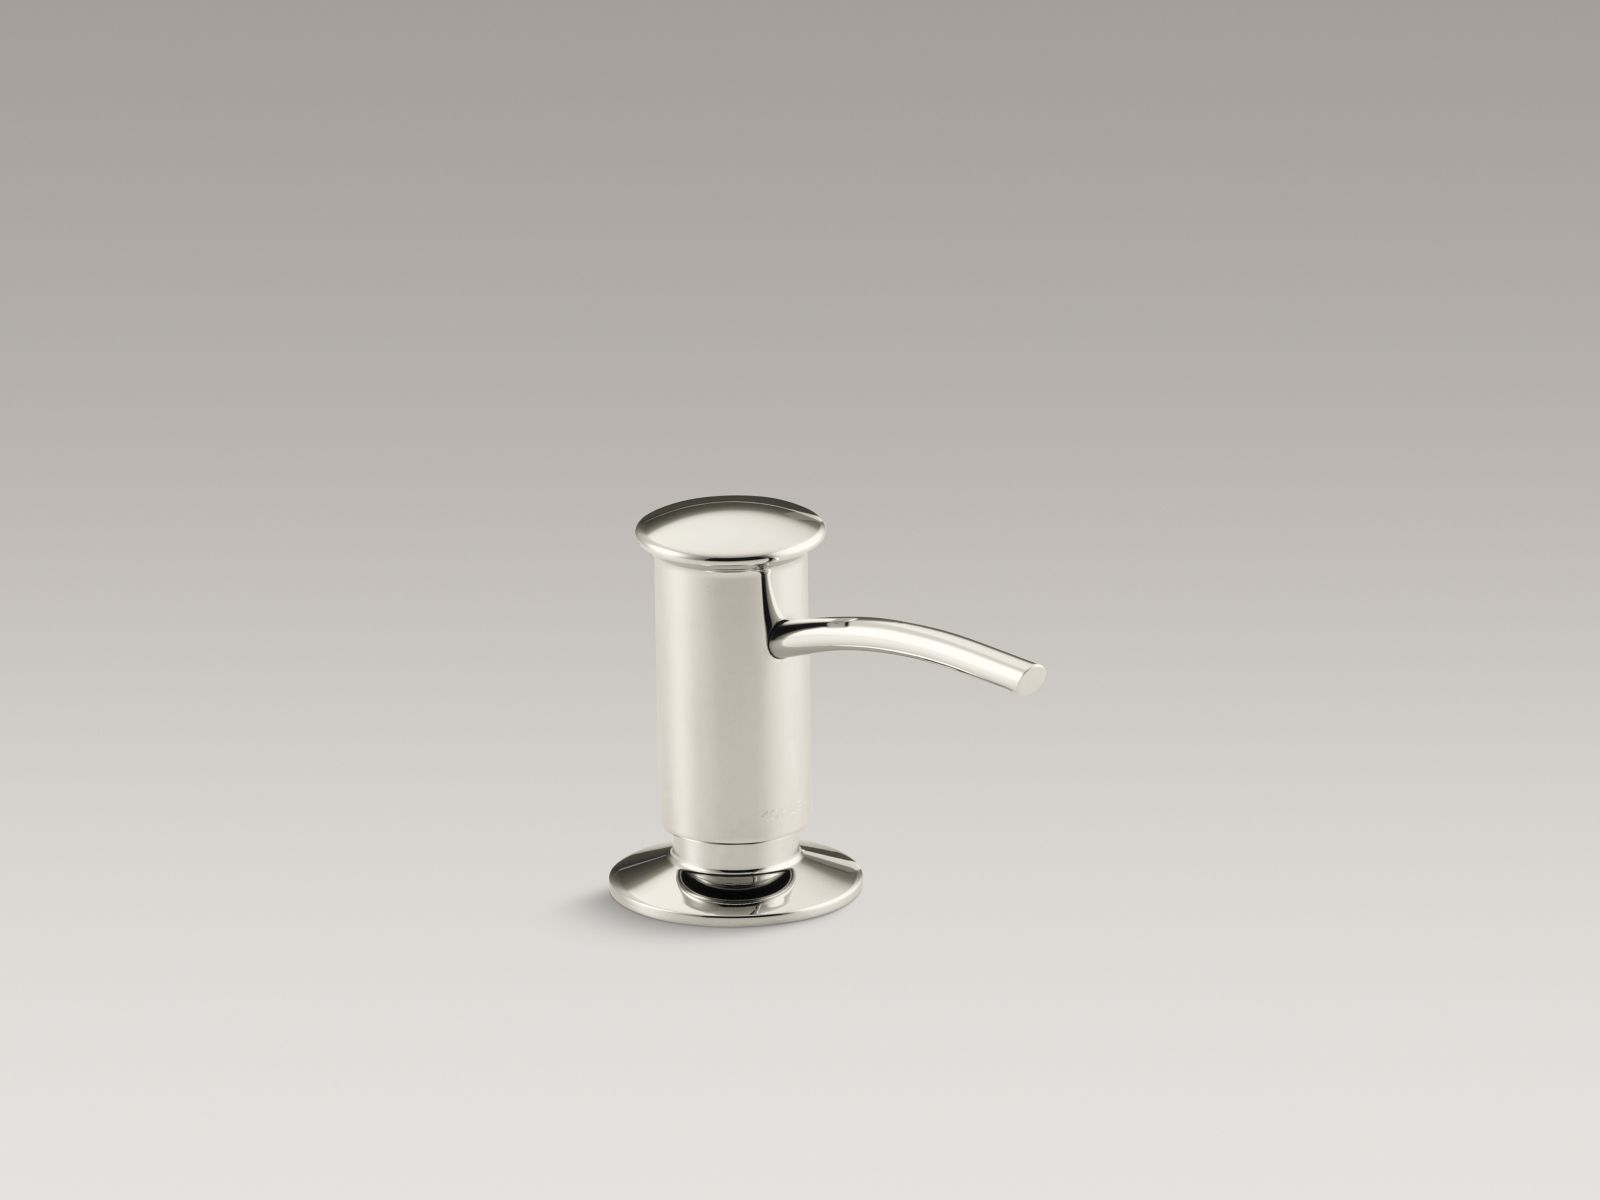 Kohler K-1895-C-SN Contemporary Design Clam Shell Packed Soap or Lotion Dispenser Polished Nickel